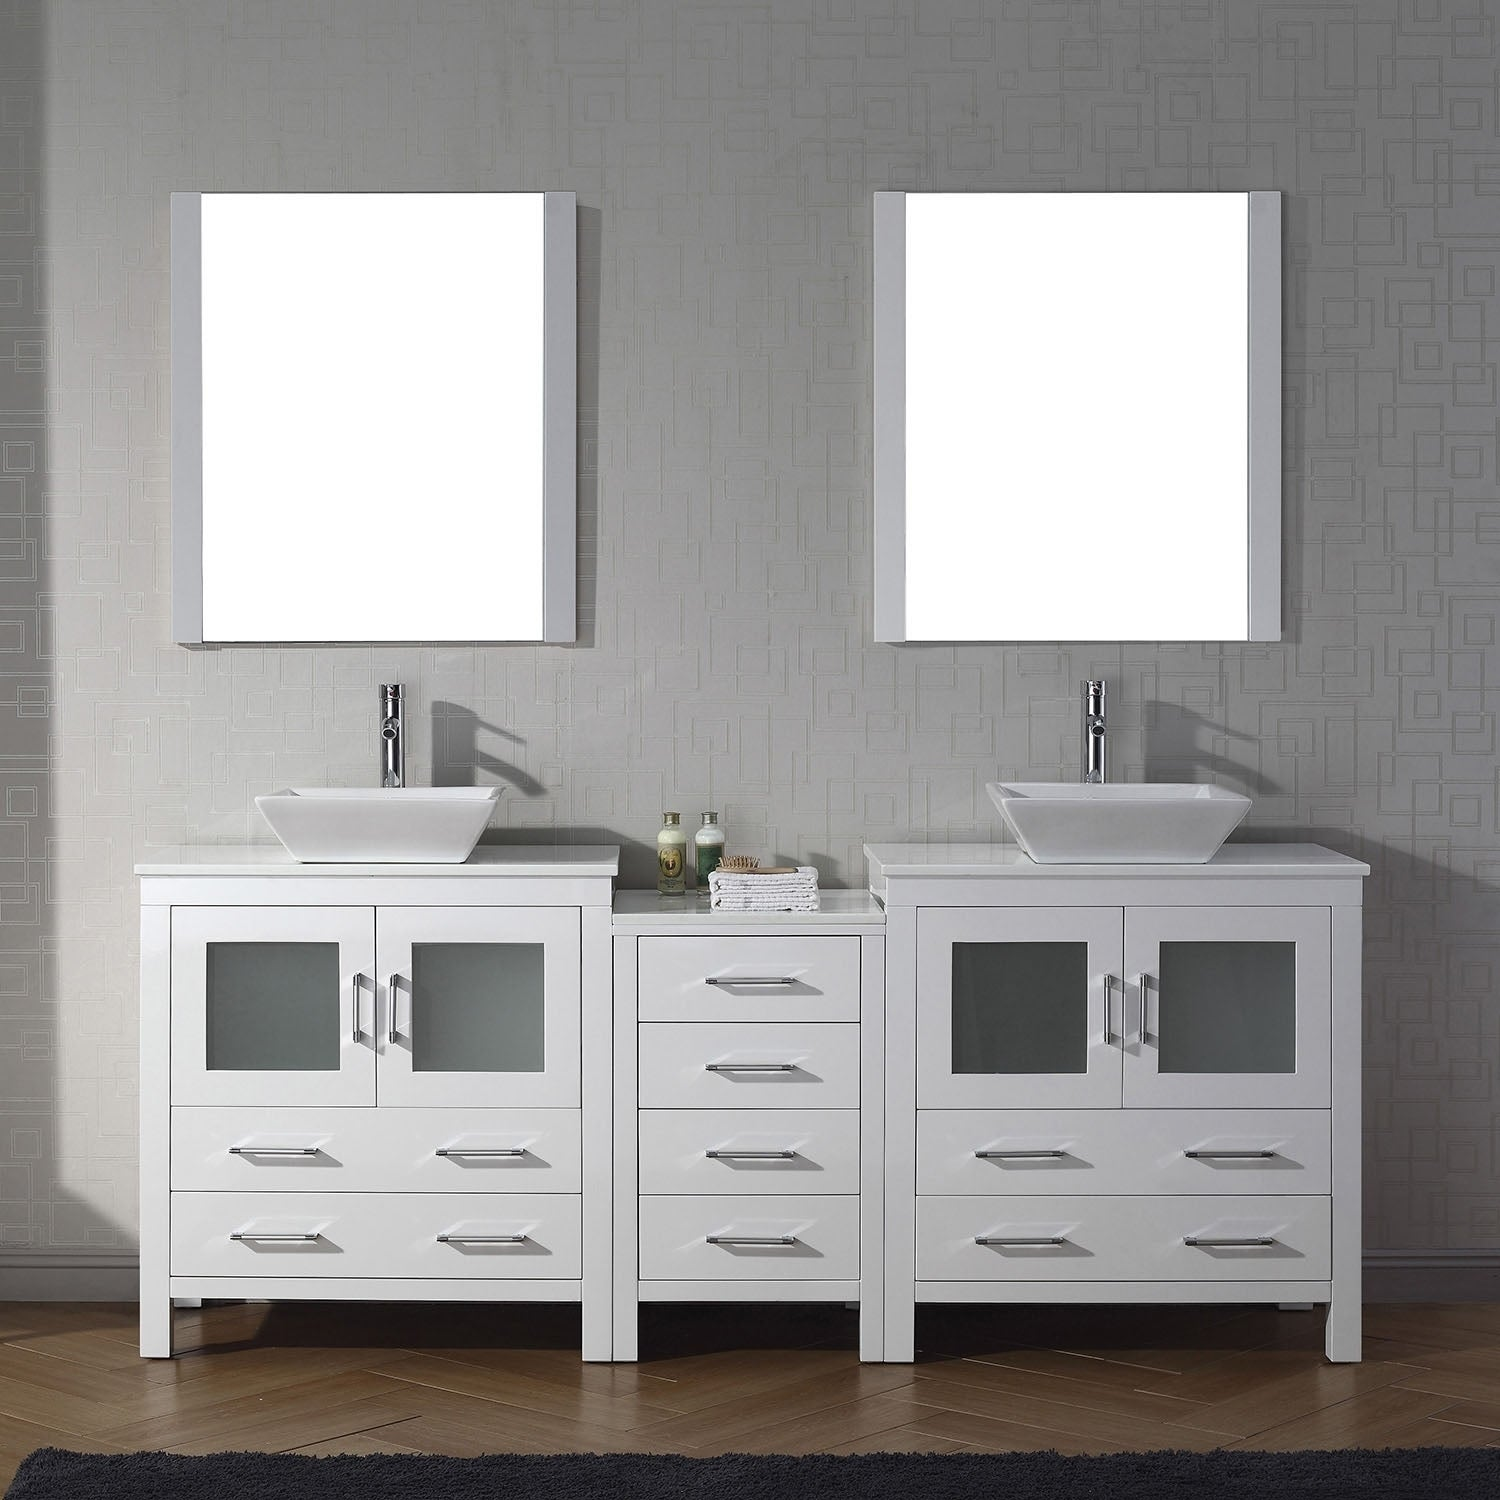 Virtu Usa Dior 82 Inch White Stone Double Bathroom Vanity Set With Faucet Options Free Shipping Today 17405085